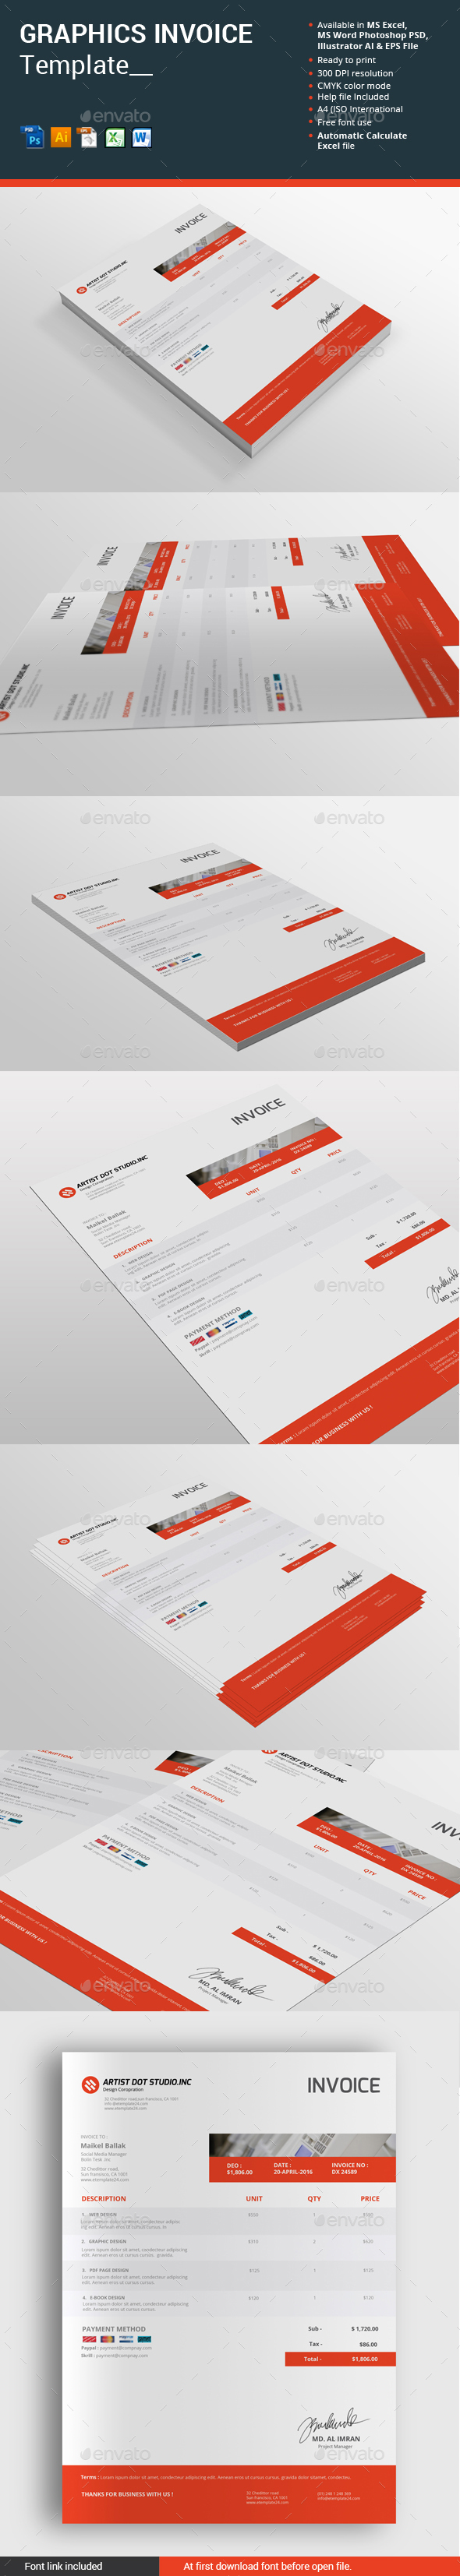 Graphics Invoice Template - Proposals & Invoices Stationery